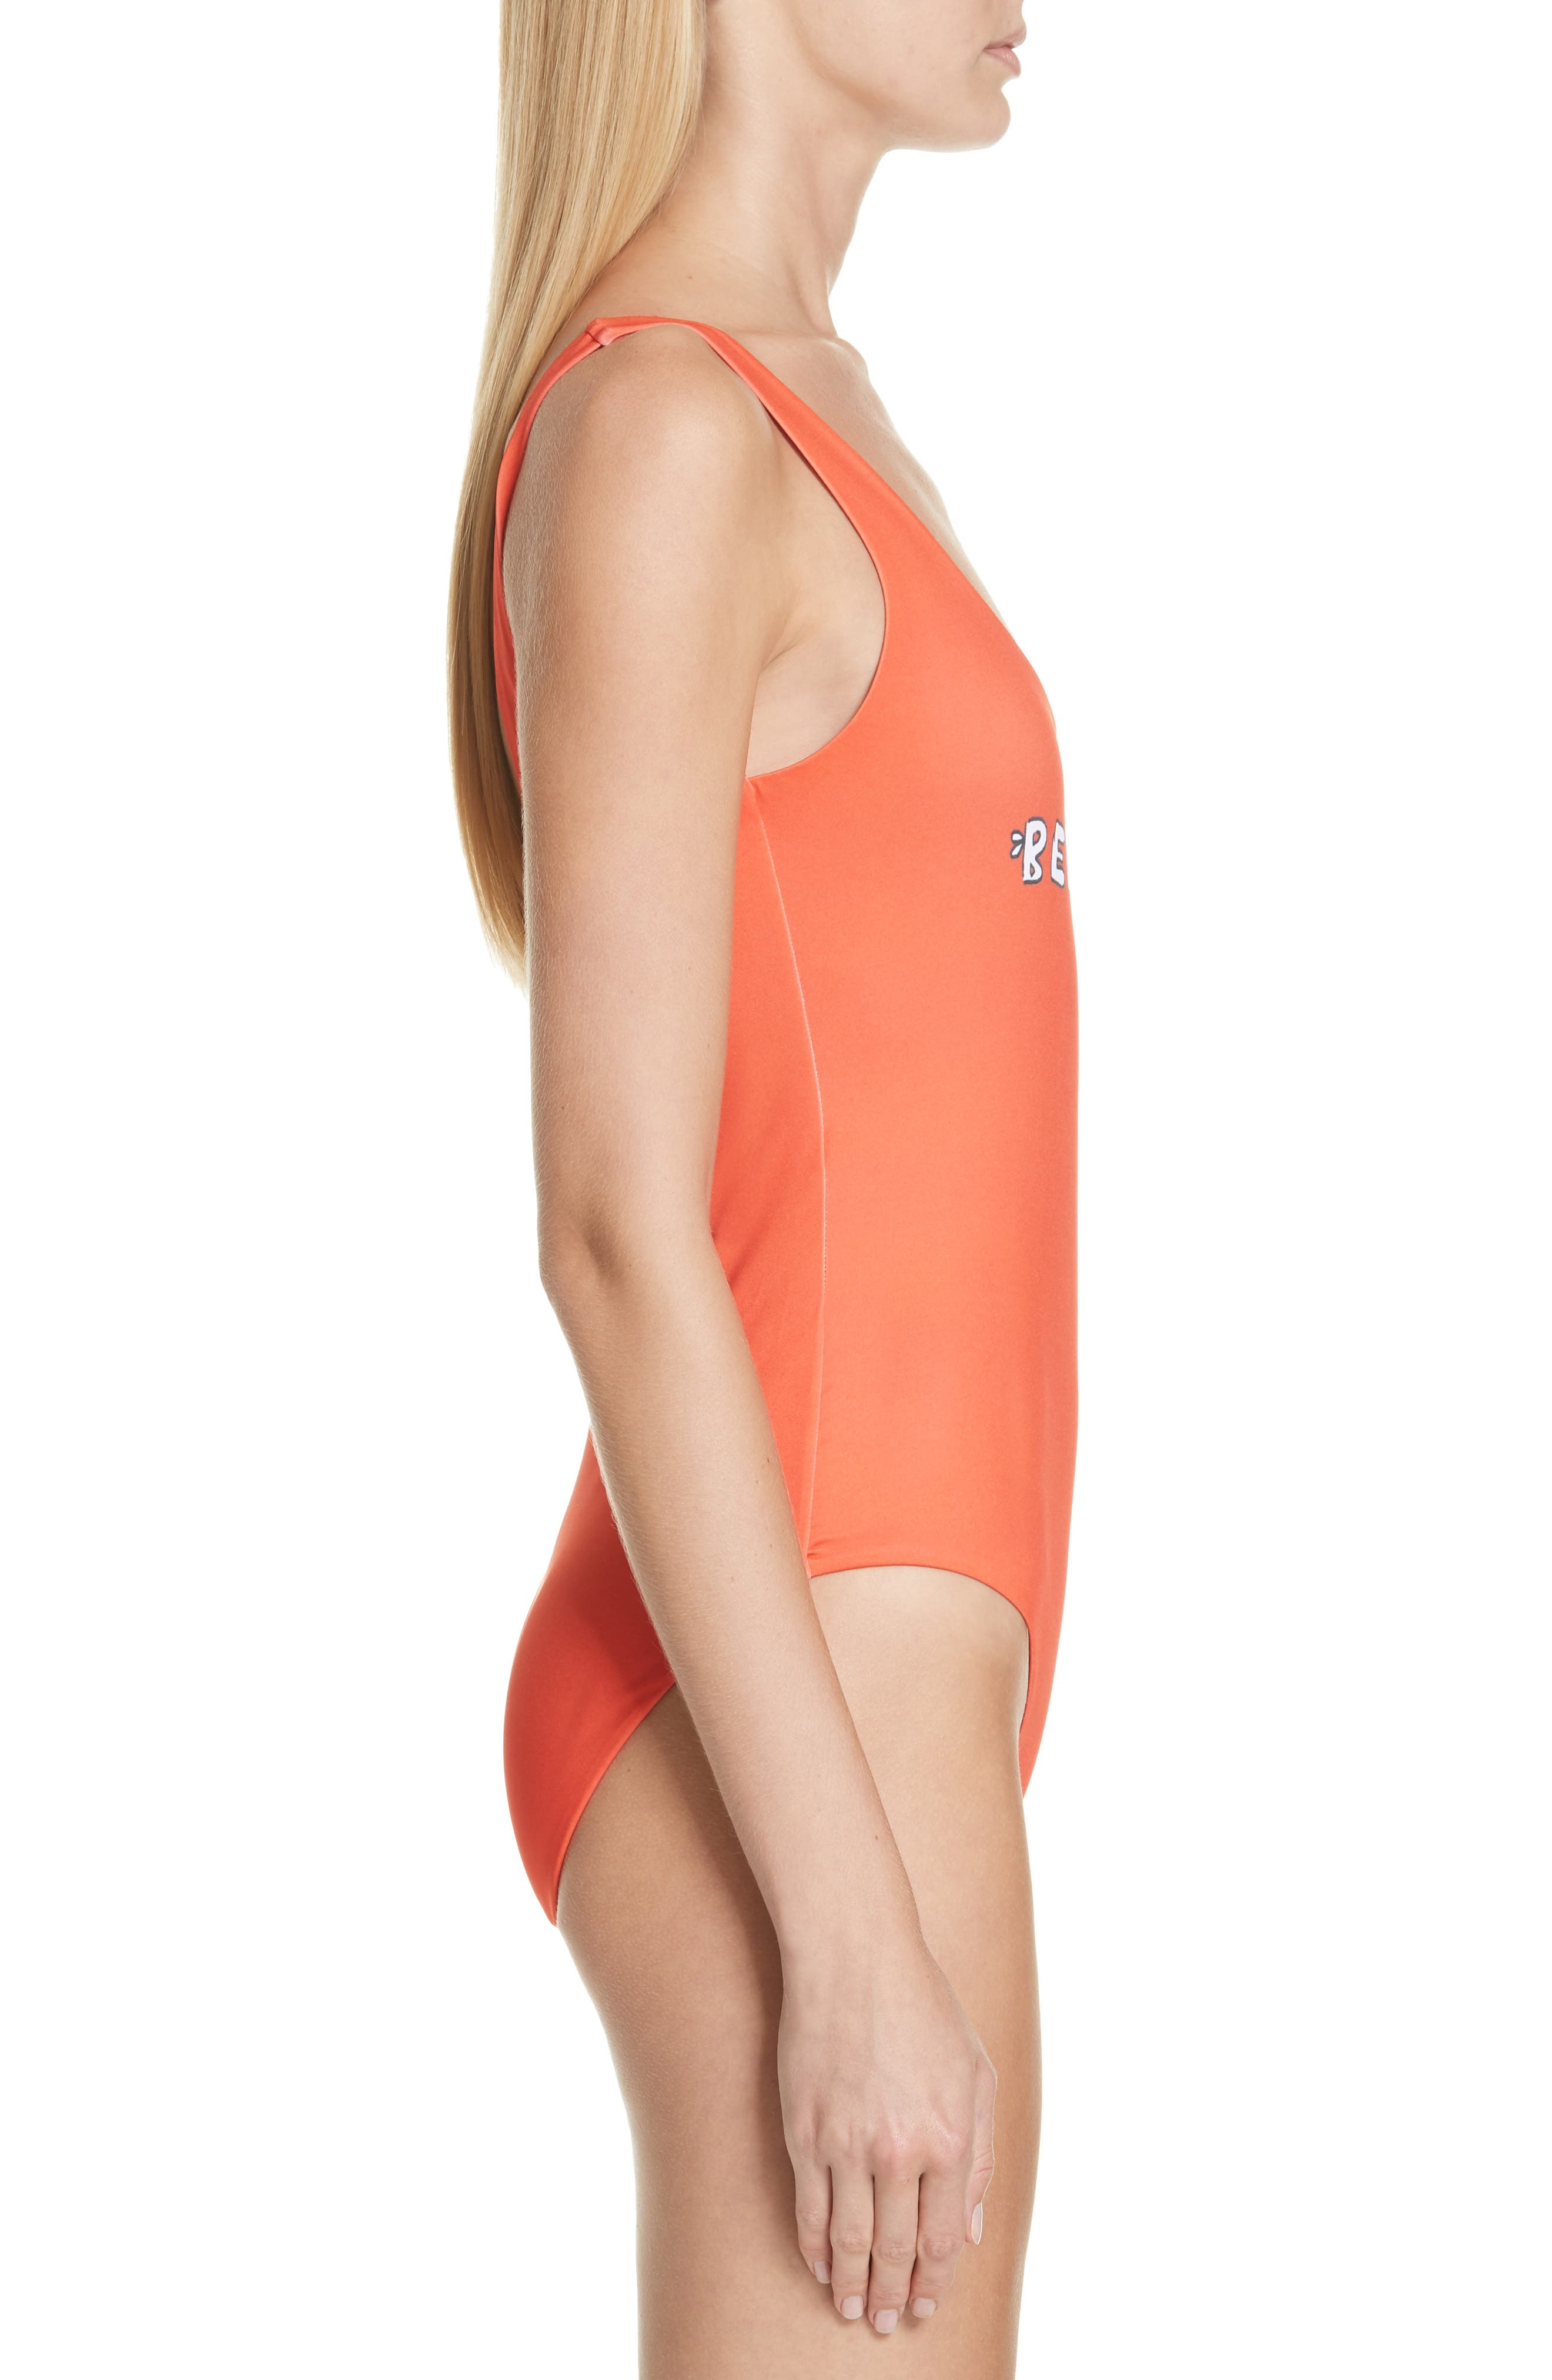 Profilic One-Piece Swimsuit,                             Alternate thumbnail 5, color,                             Big Apple Red